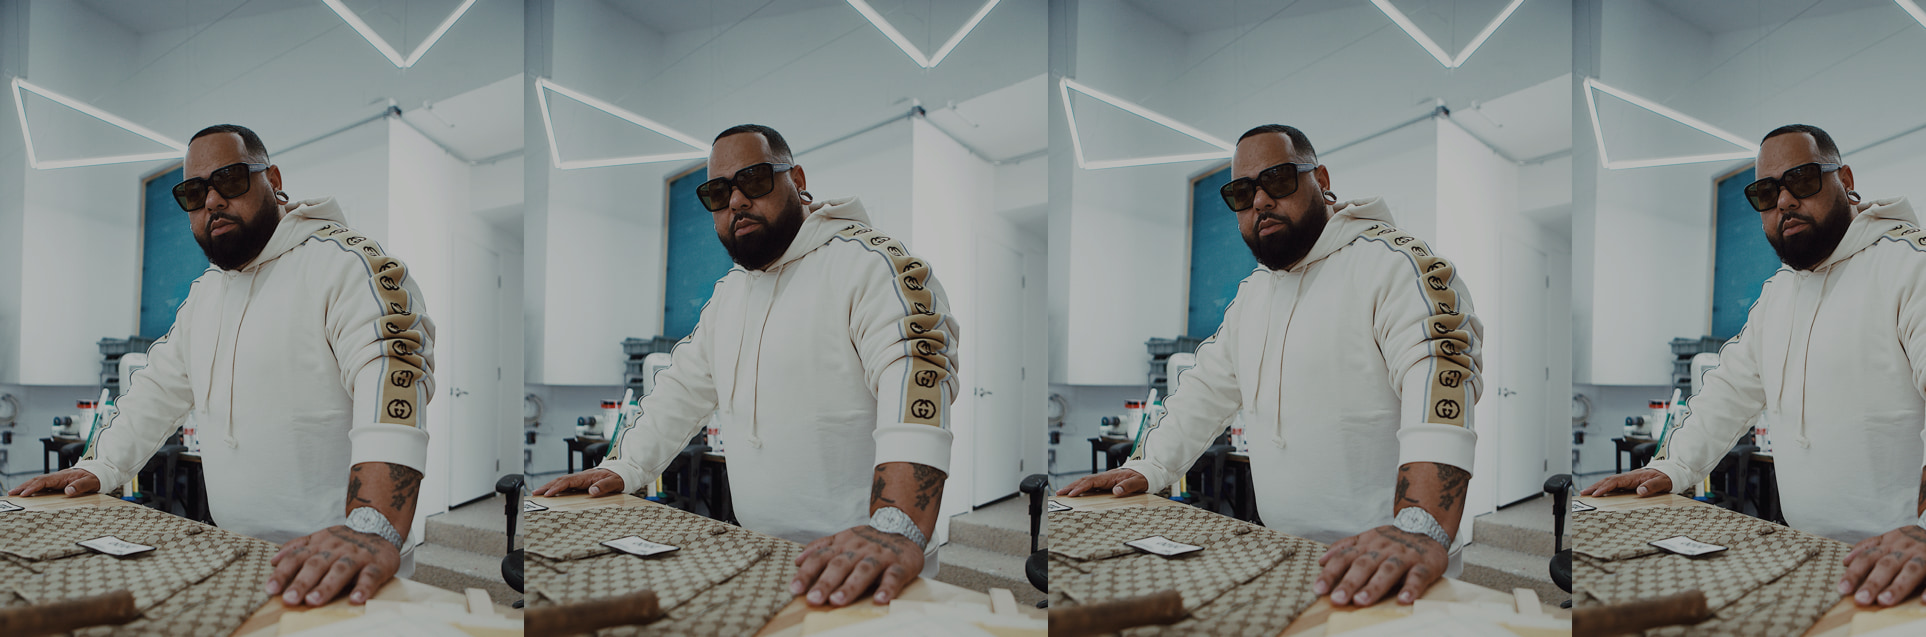 How Sheron Barber transformed his underdog roots and passion for creation into a custom design practice catering to names like Rihanna and Drake.